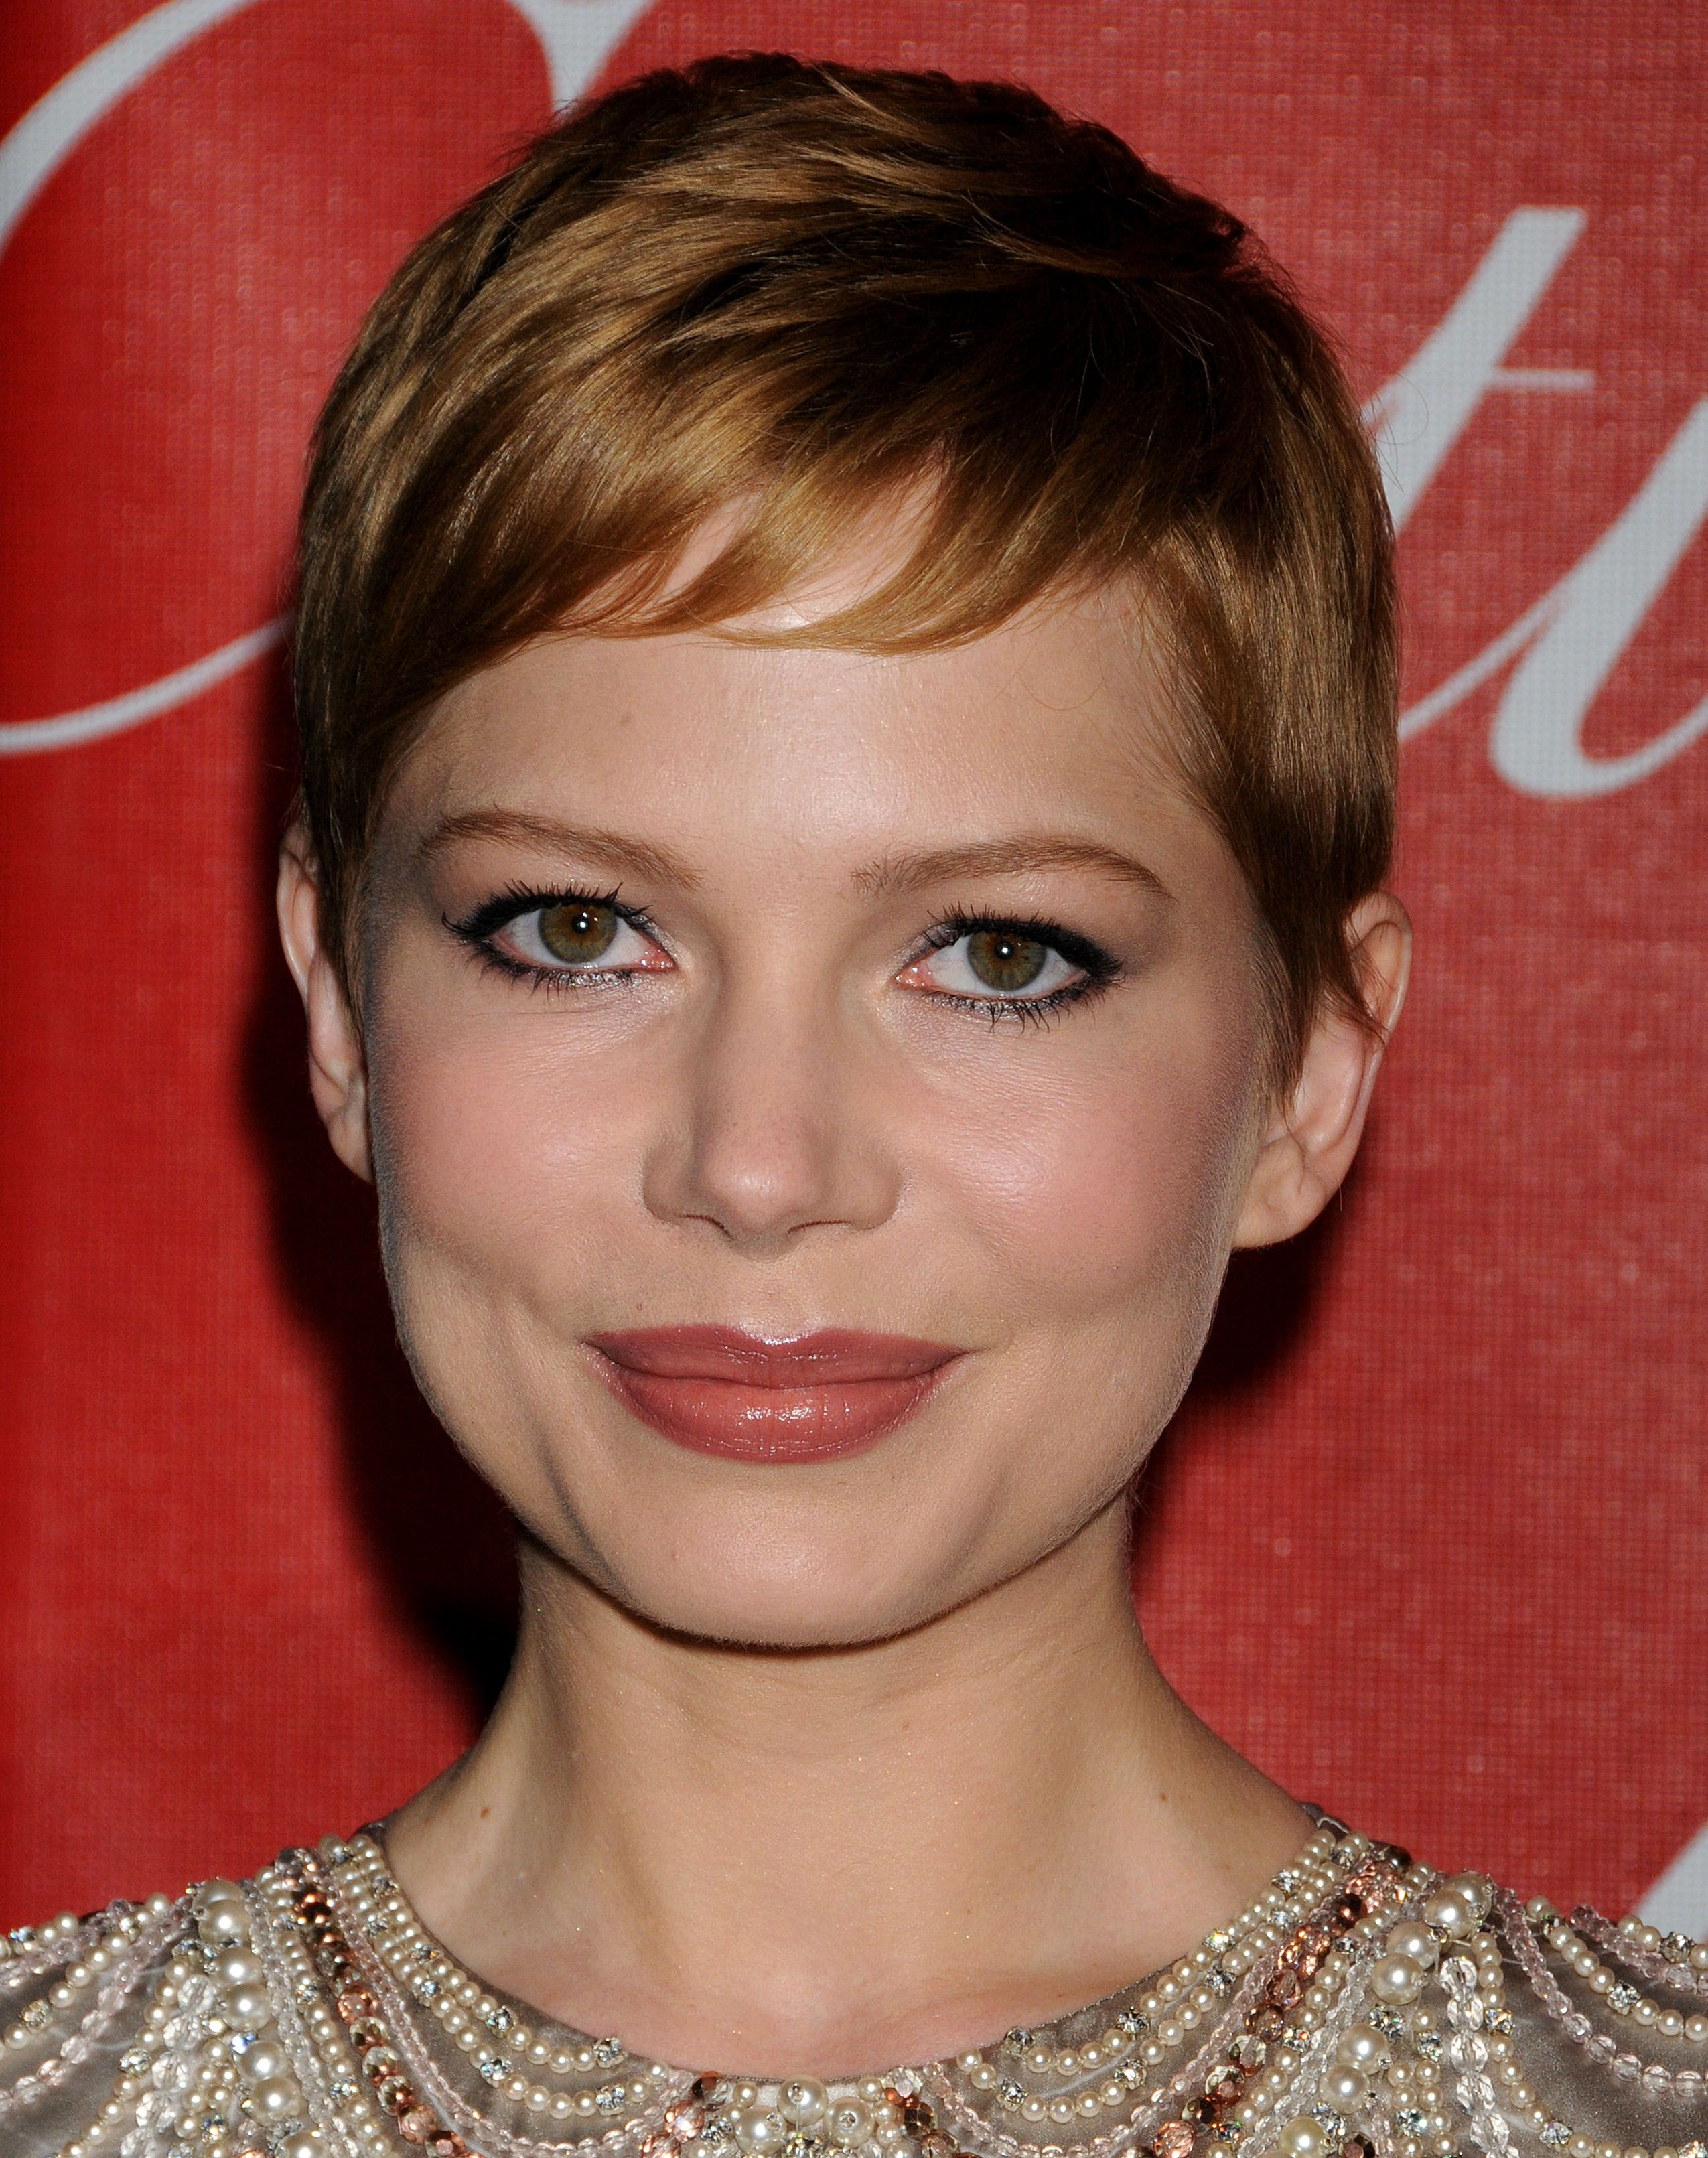 Michelle Williams(actress) photo 123 of 352 pics ...